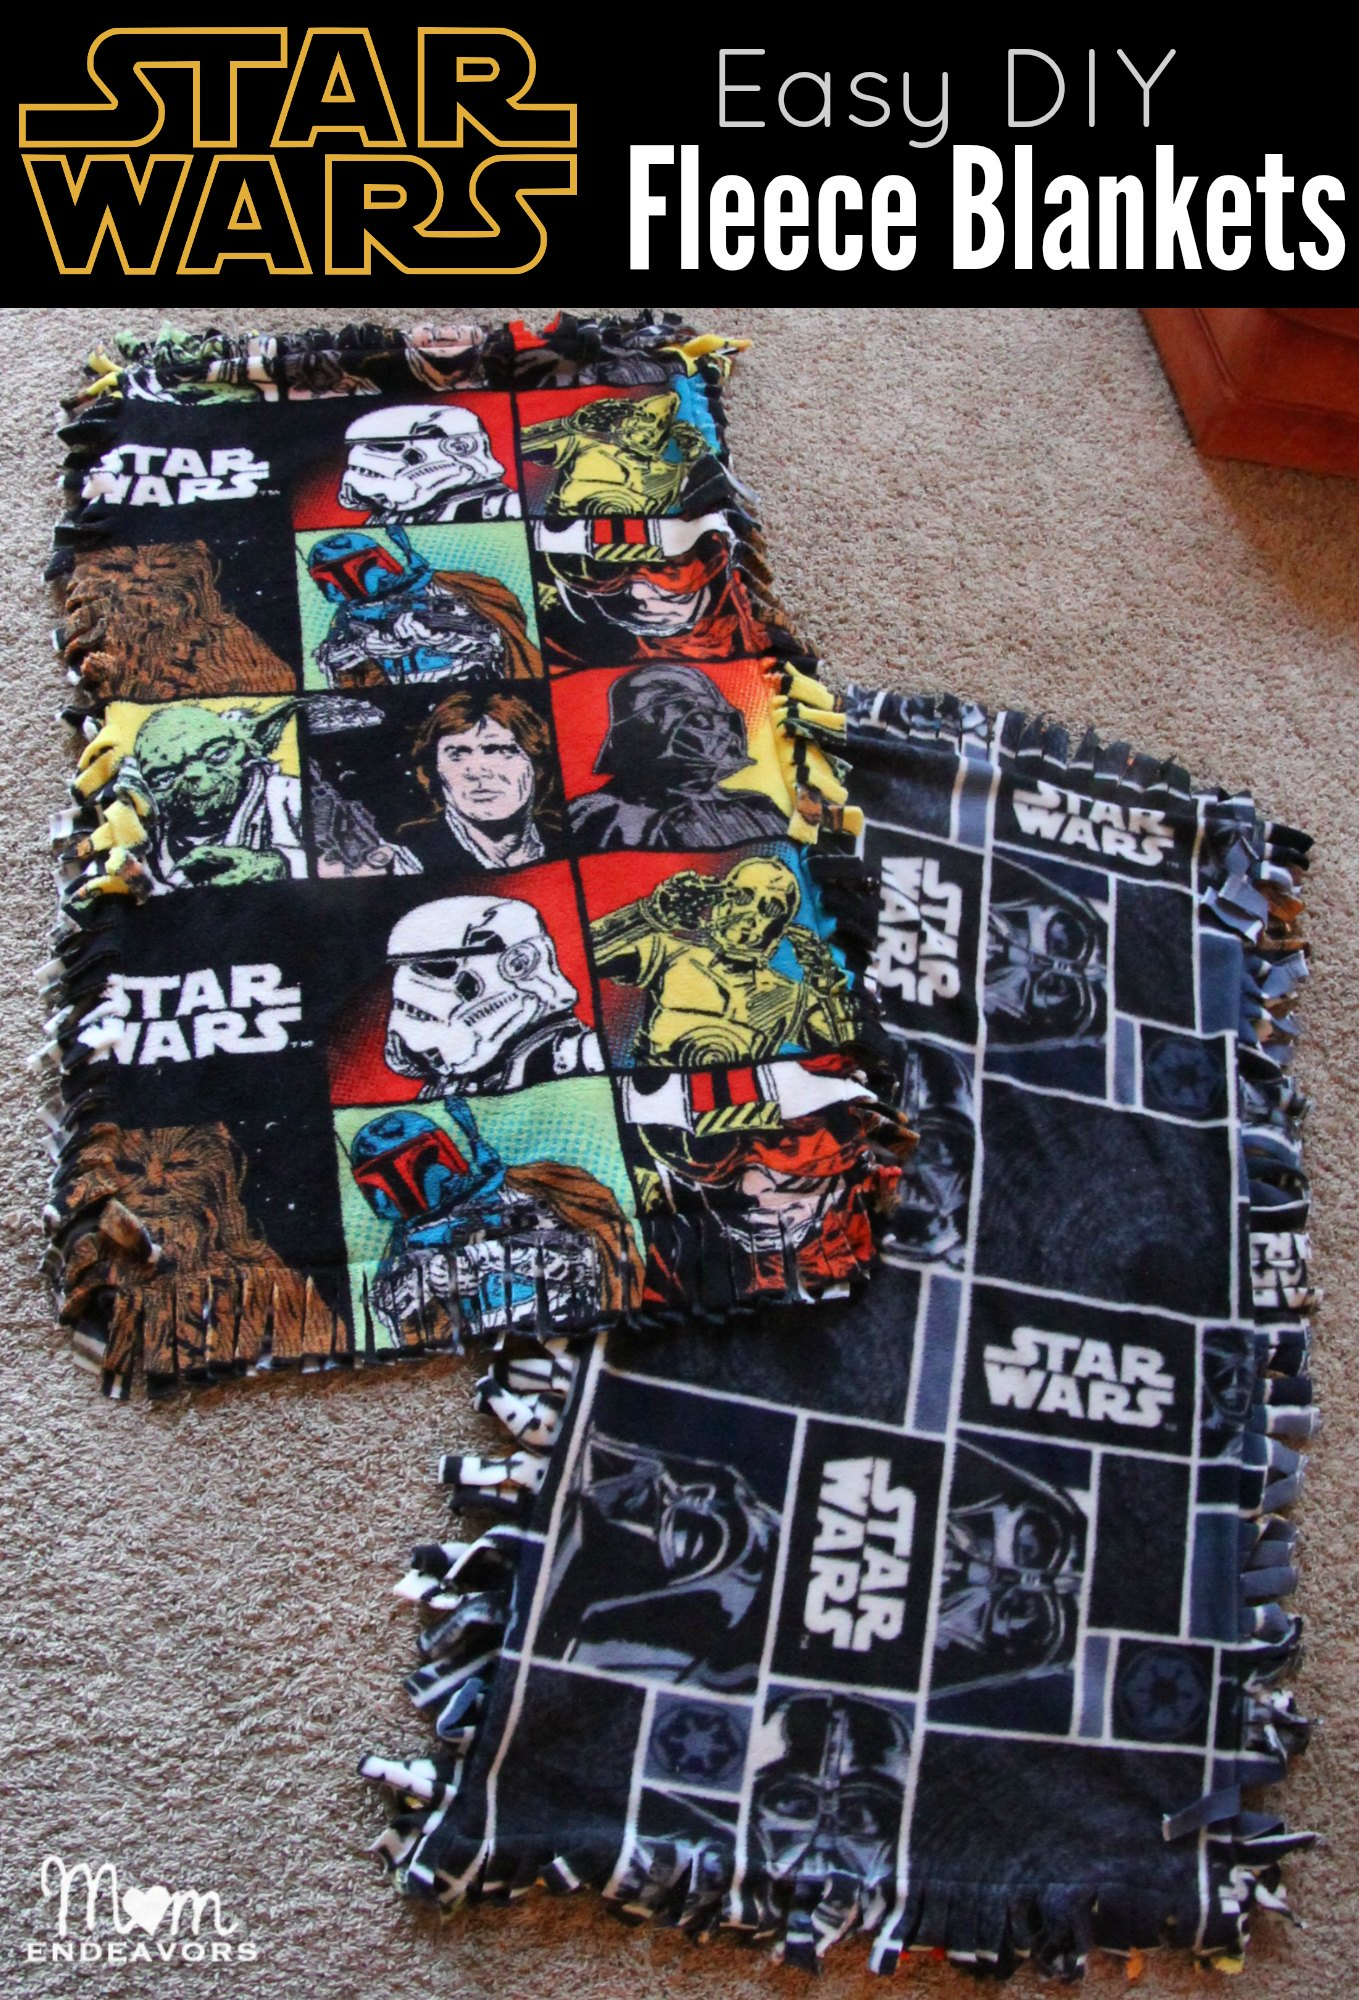 Easy Diy Star Wars Fleece